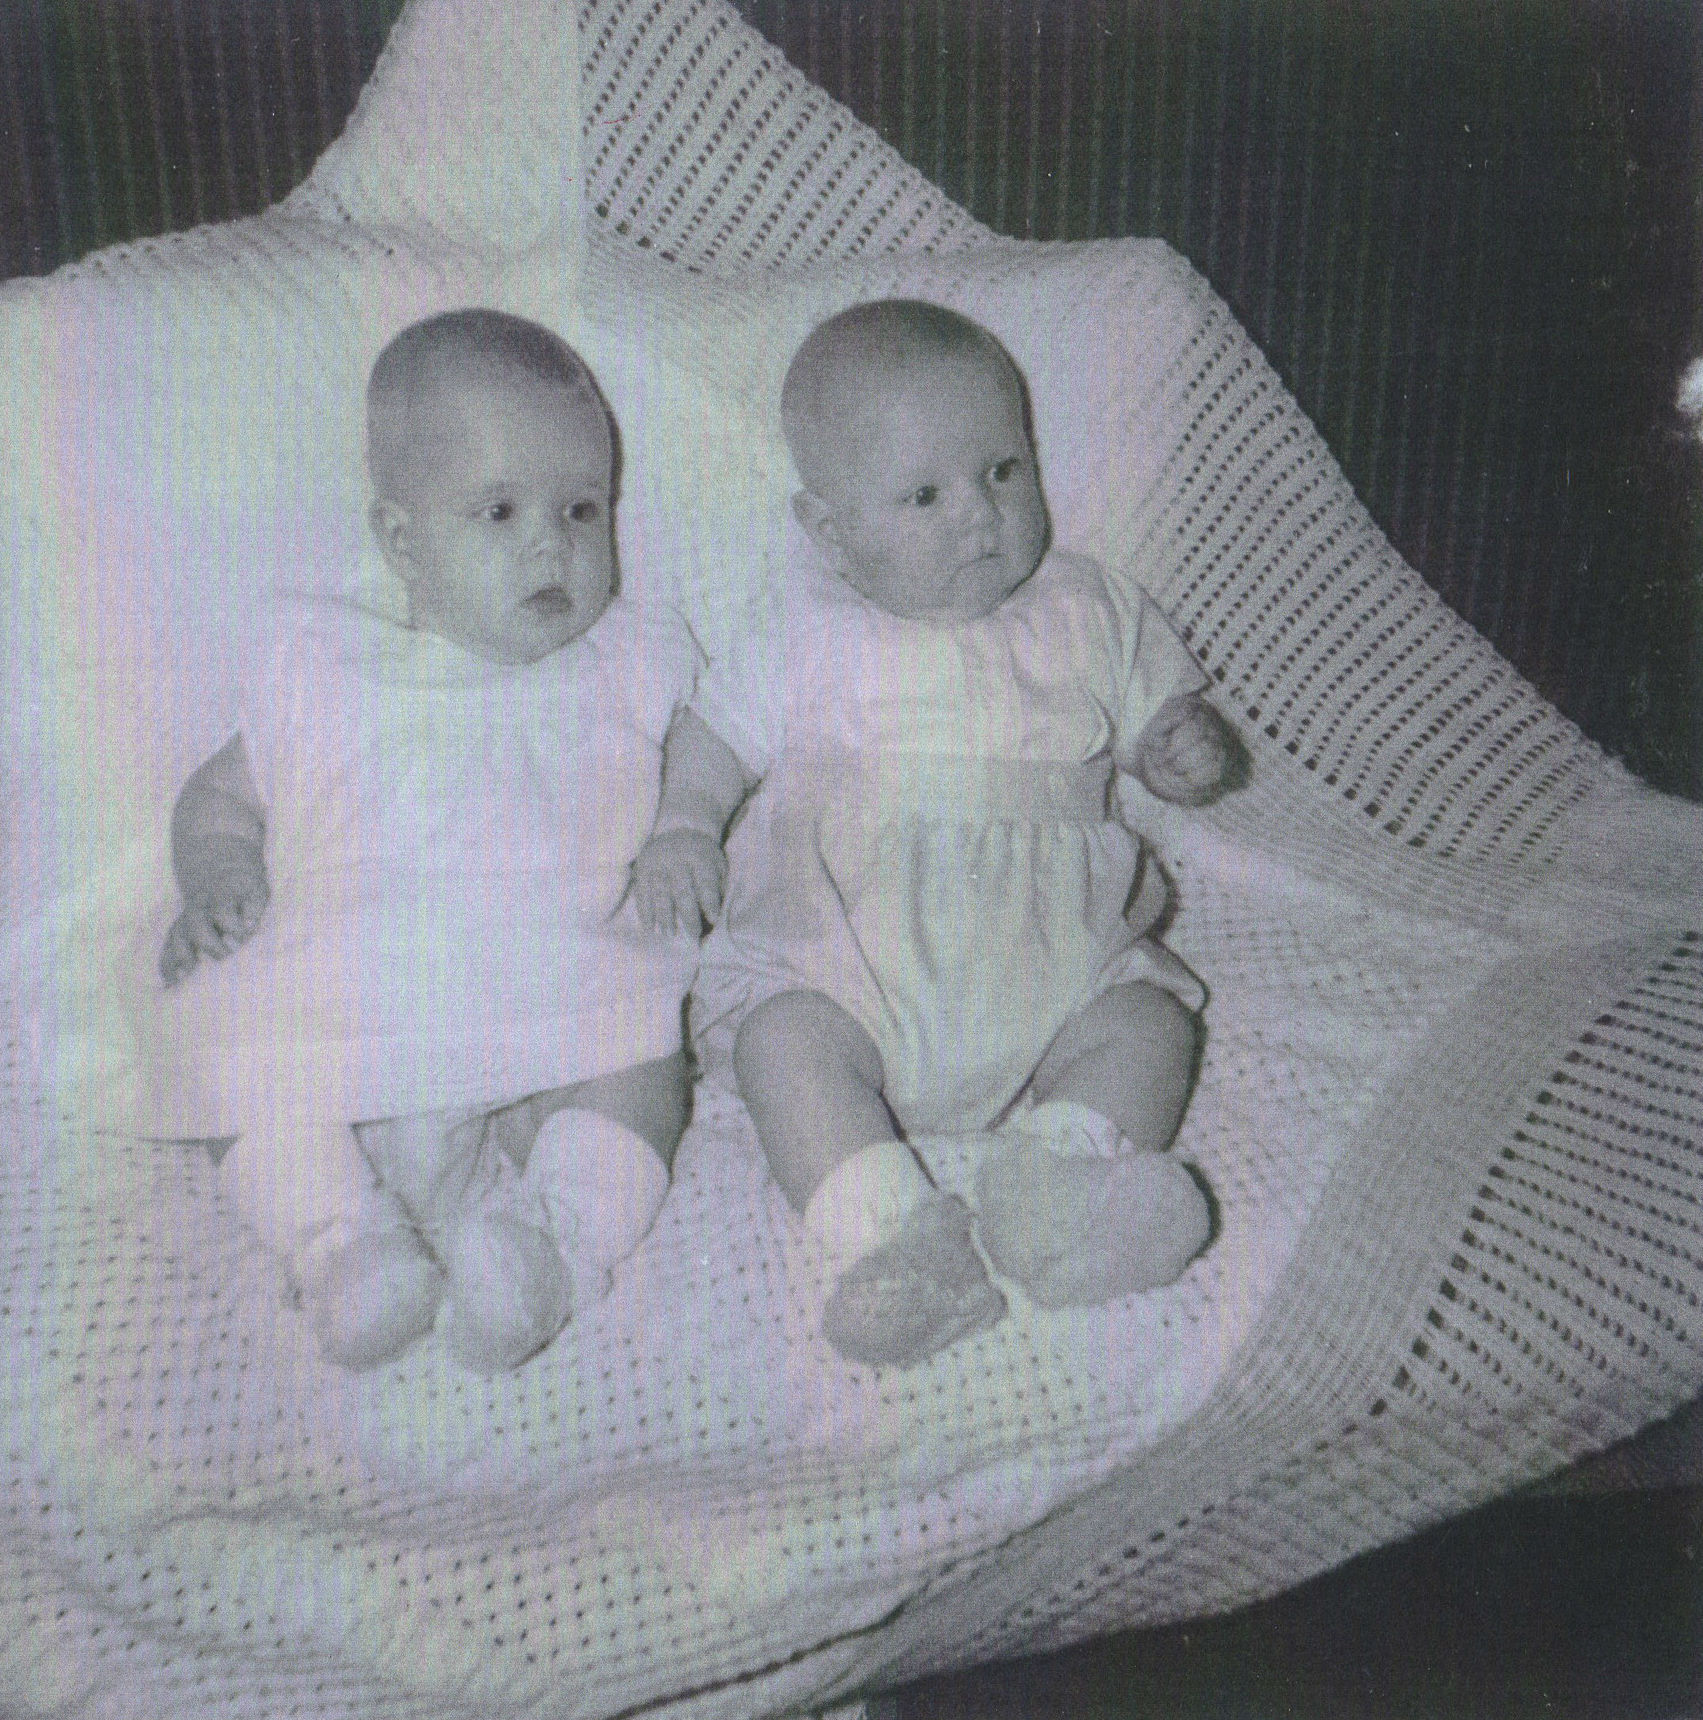 65 - My Twins Gillian & Paul aged 5 months pictured at my Home at 41 Dean Path.